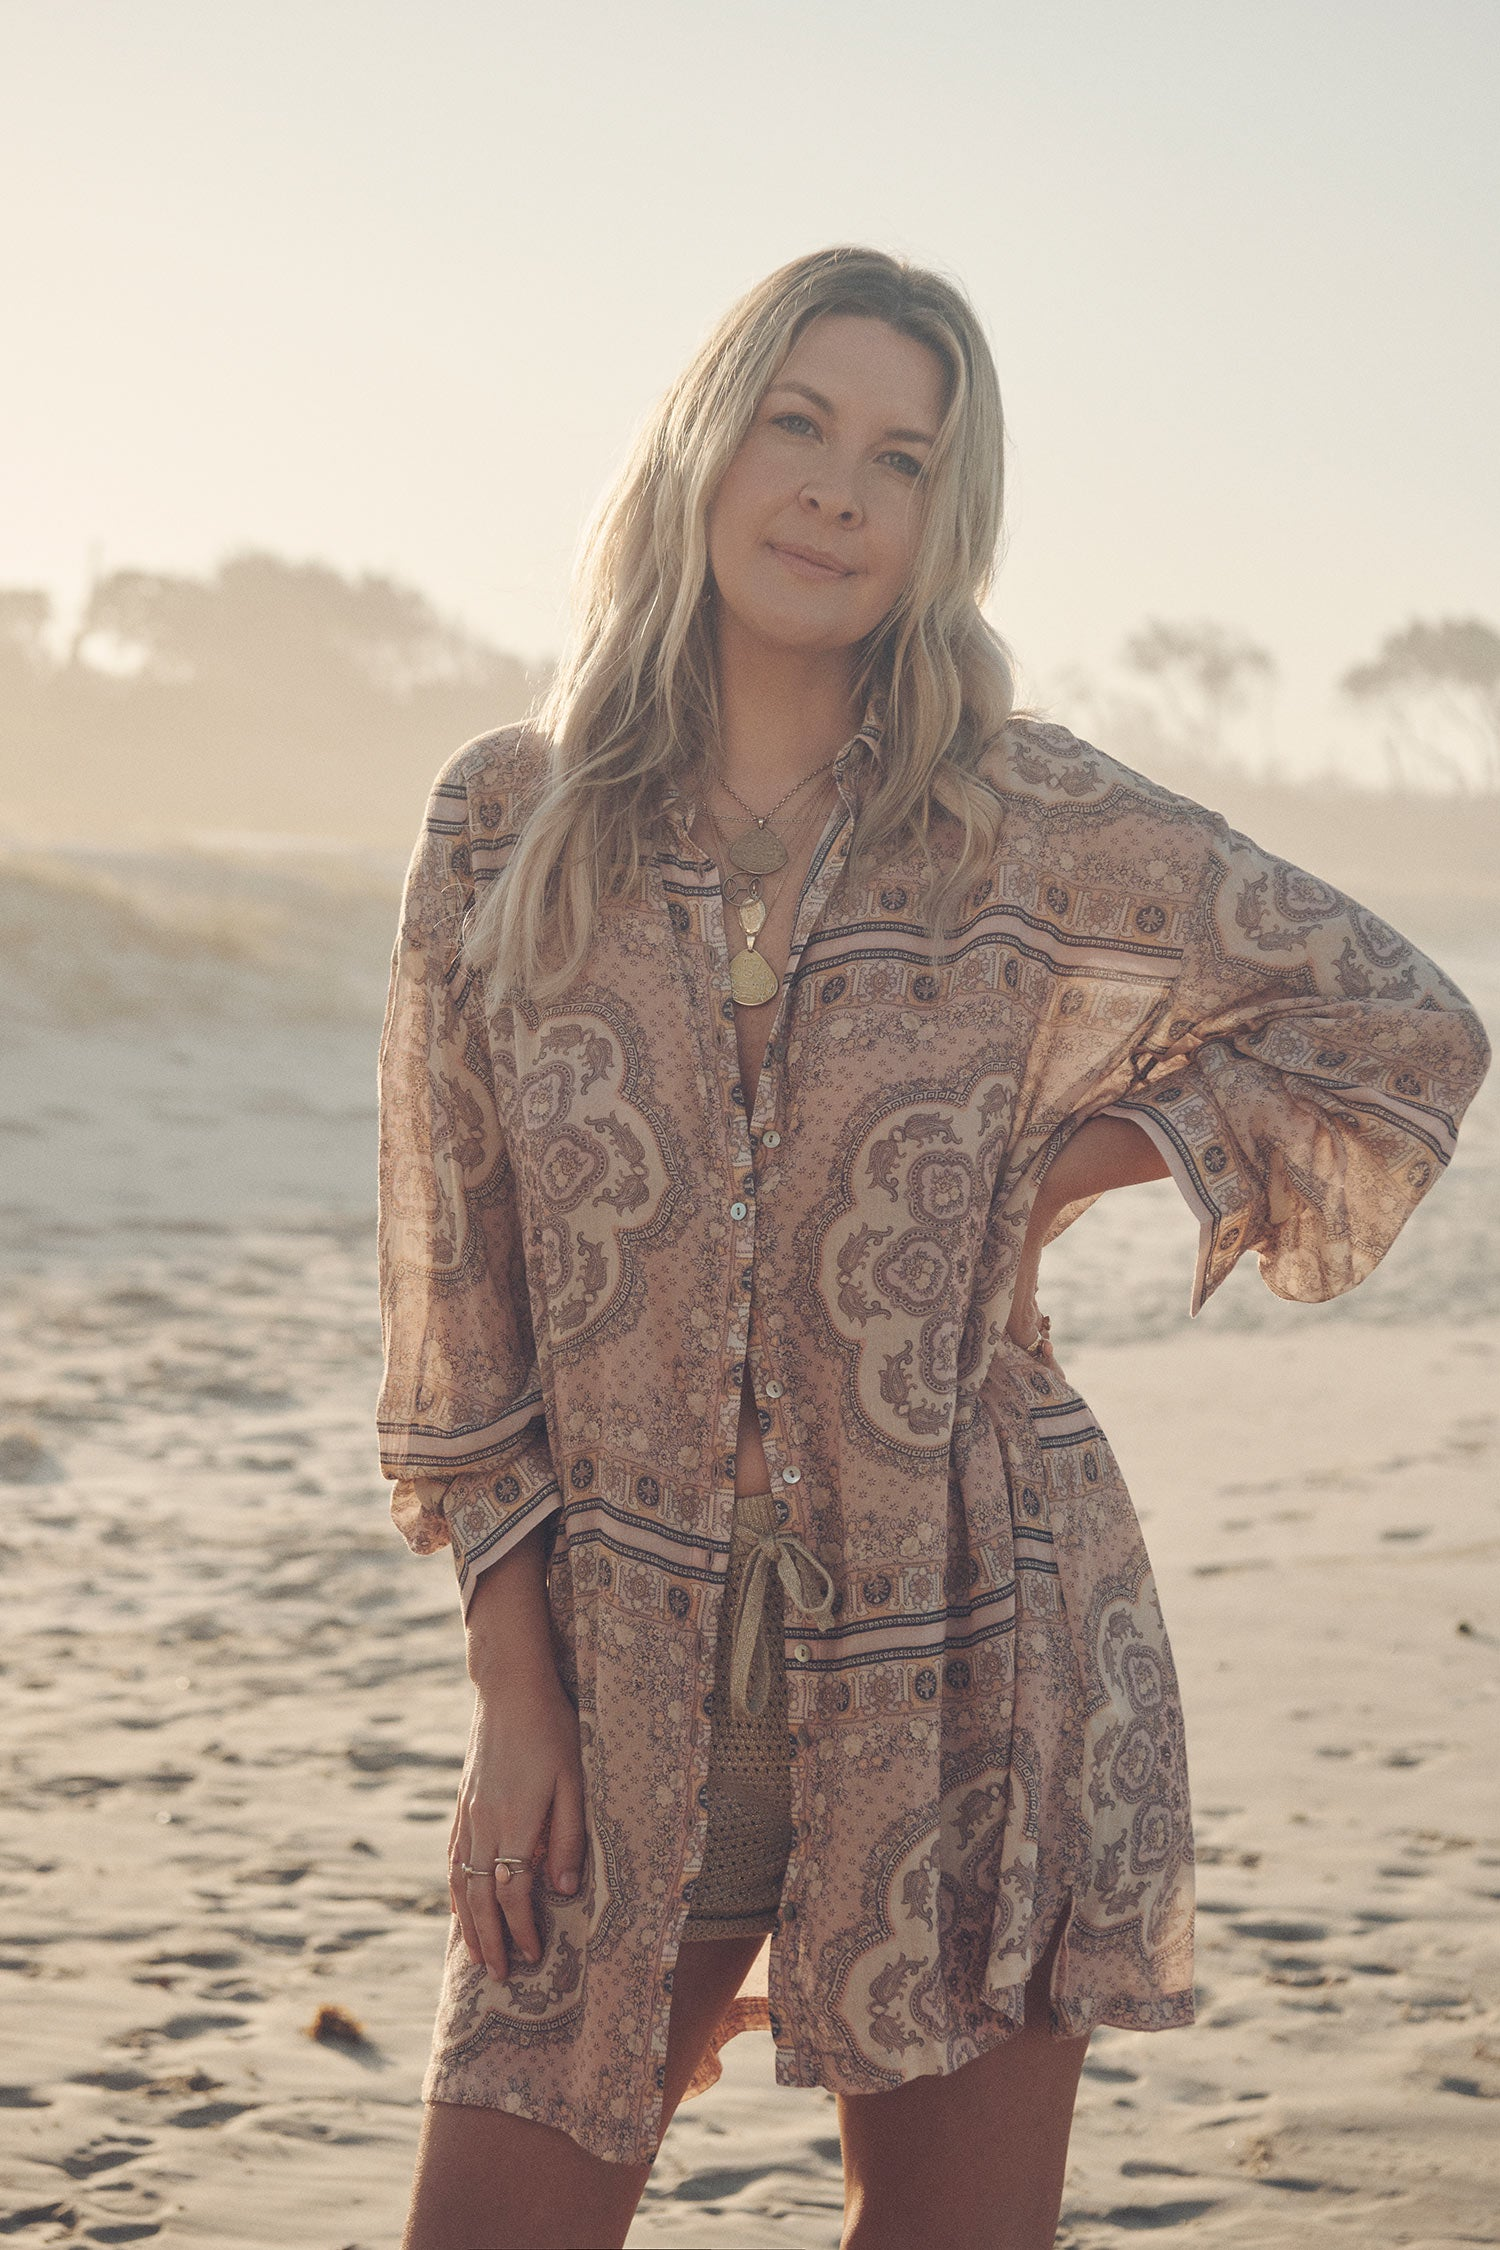 Jeweller and campaign model, Lucie Ferguson, posing on a beach while wearing gold jewellery, the golden Spell Moonlight shorts and the pale pink Spell Rumour Print Shirt Dress, featuring a shell button down front and collar.